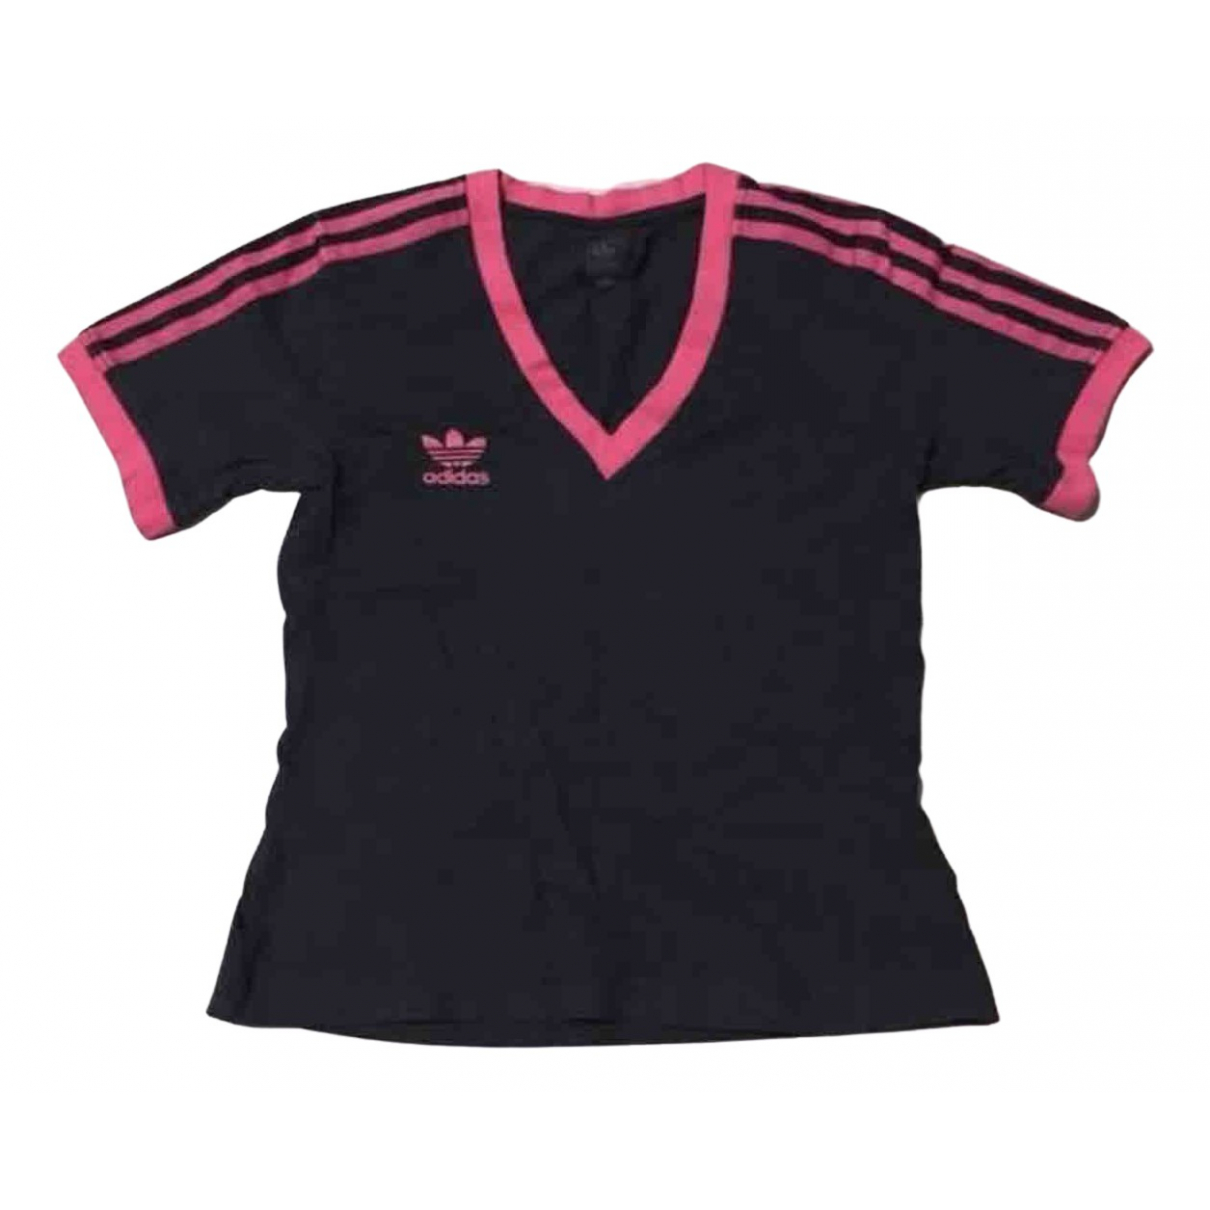 Adidas \N Black Cotton  top for Women L International